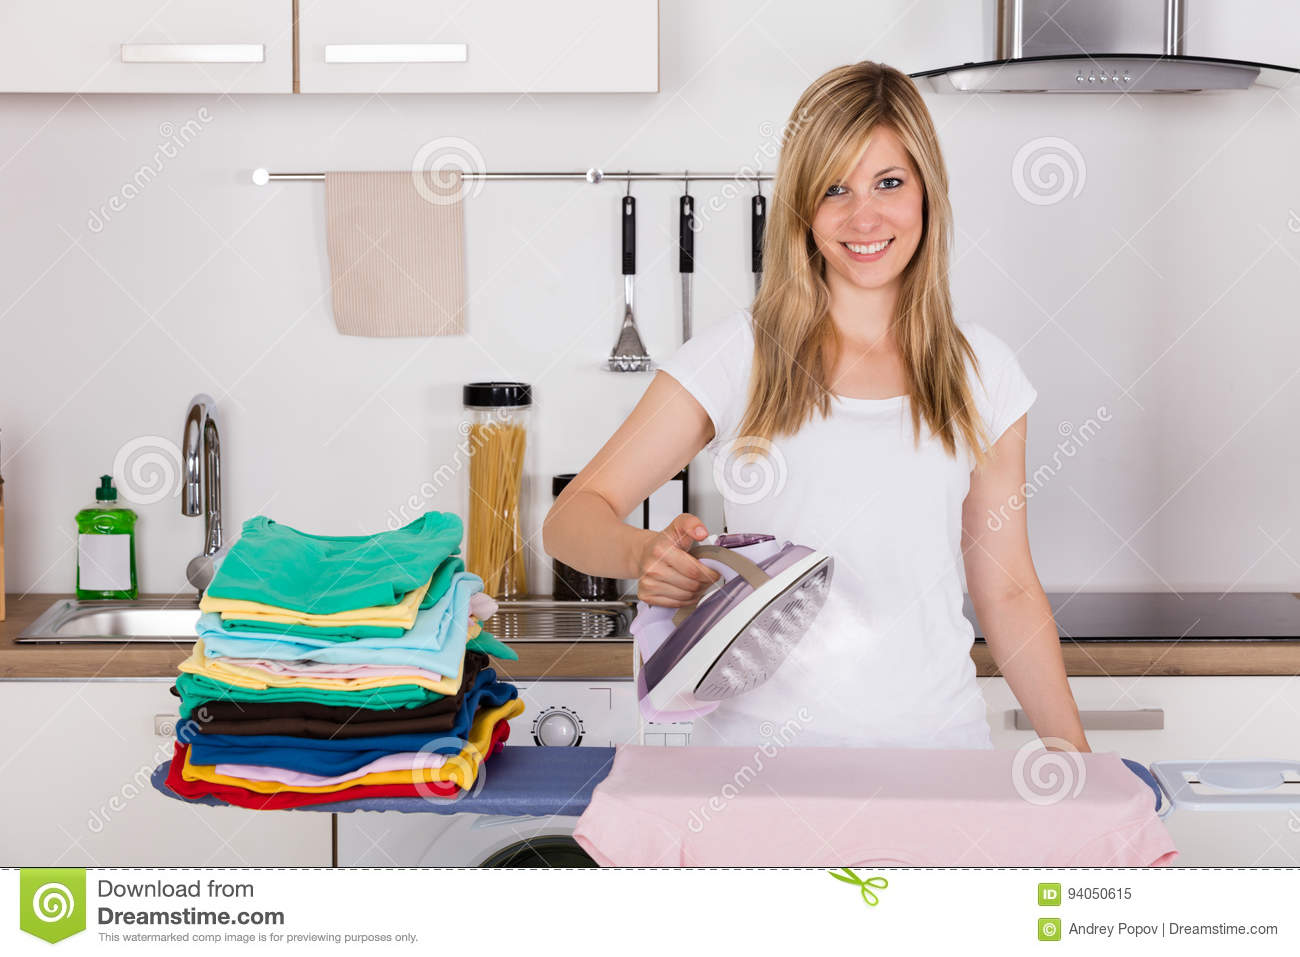 Woman Ironing Clothes With Electric Iron